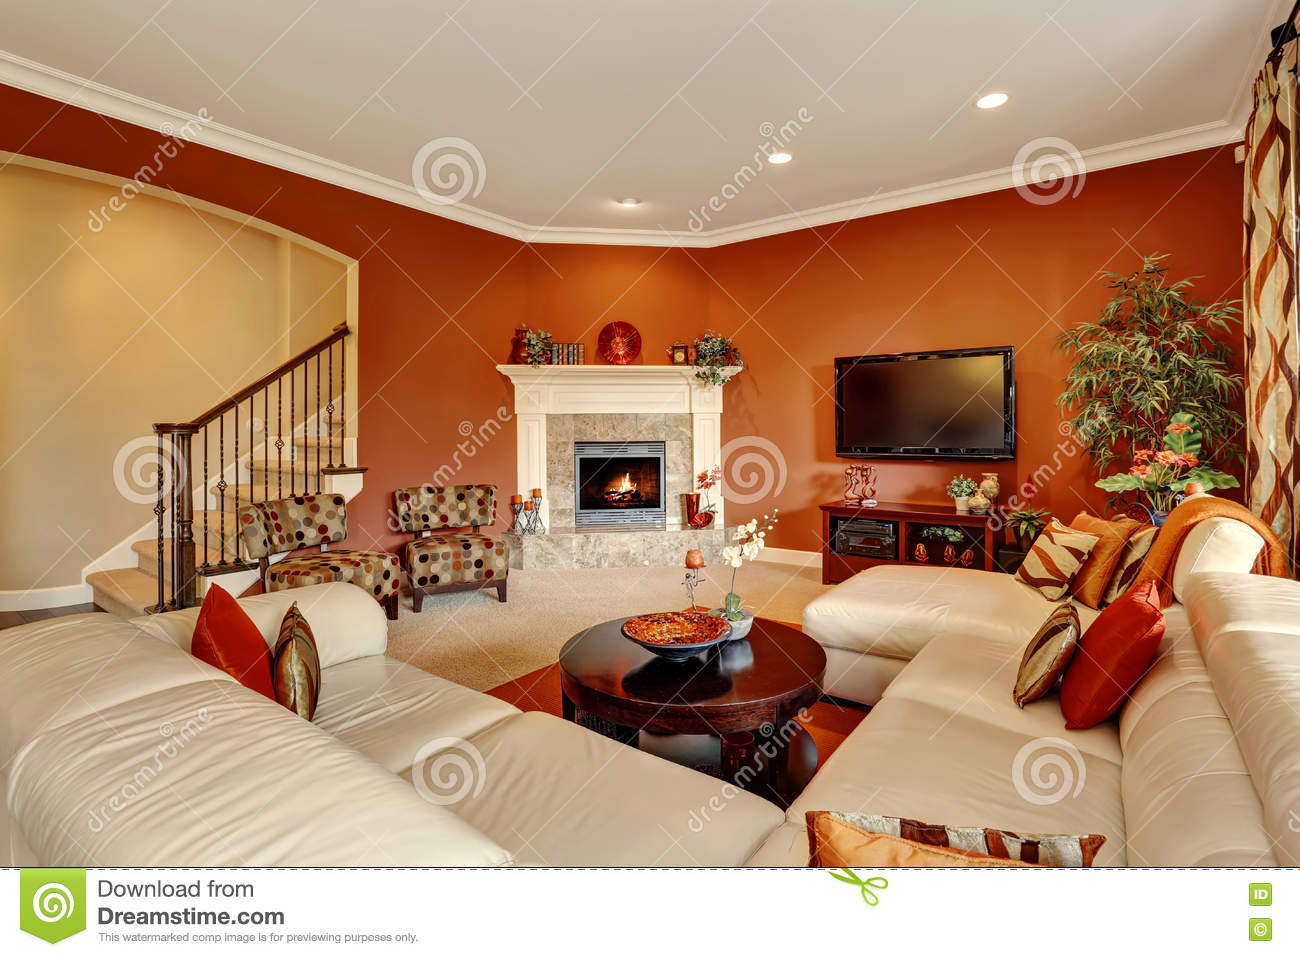 Red Typical American Family Room With Large Sofa Set Stock Photo